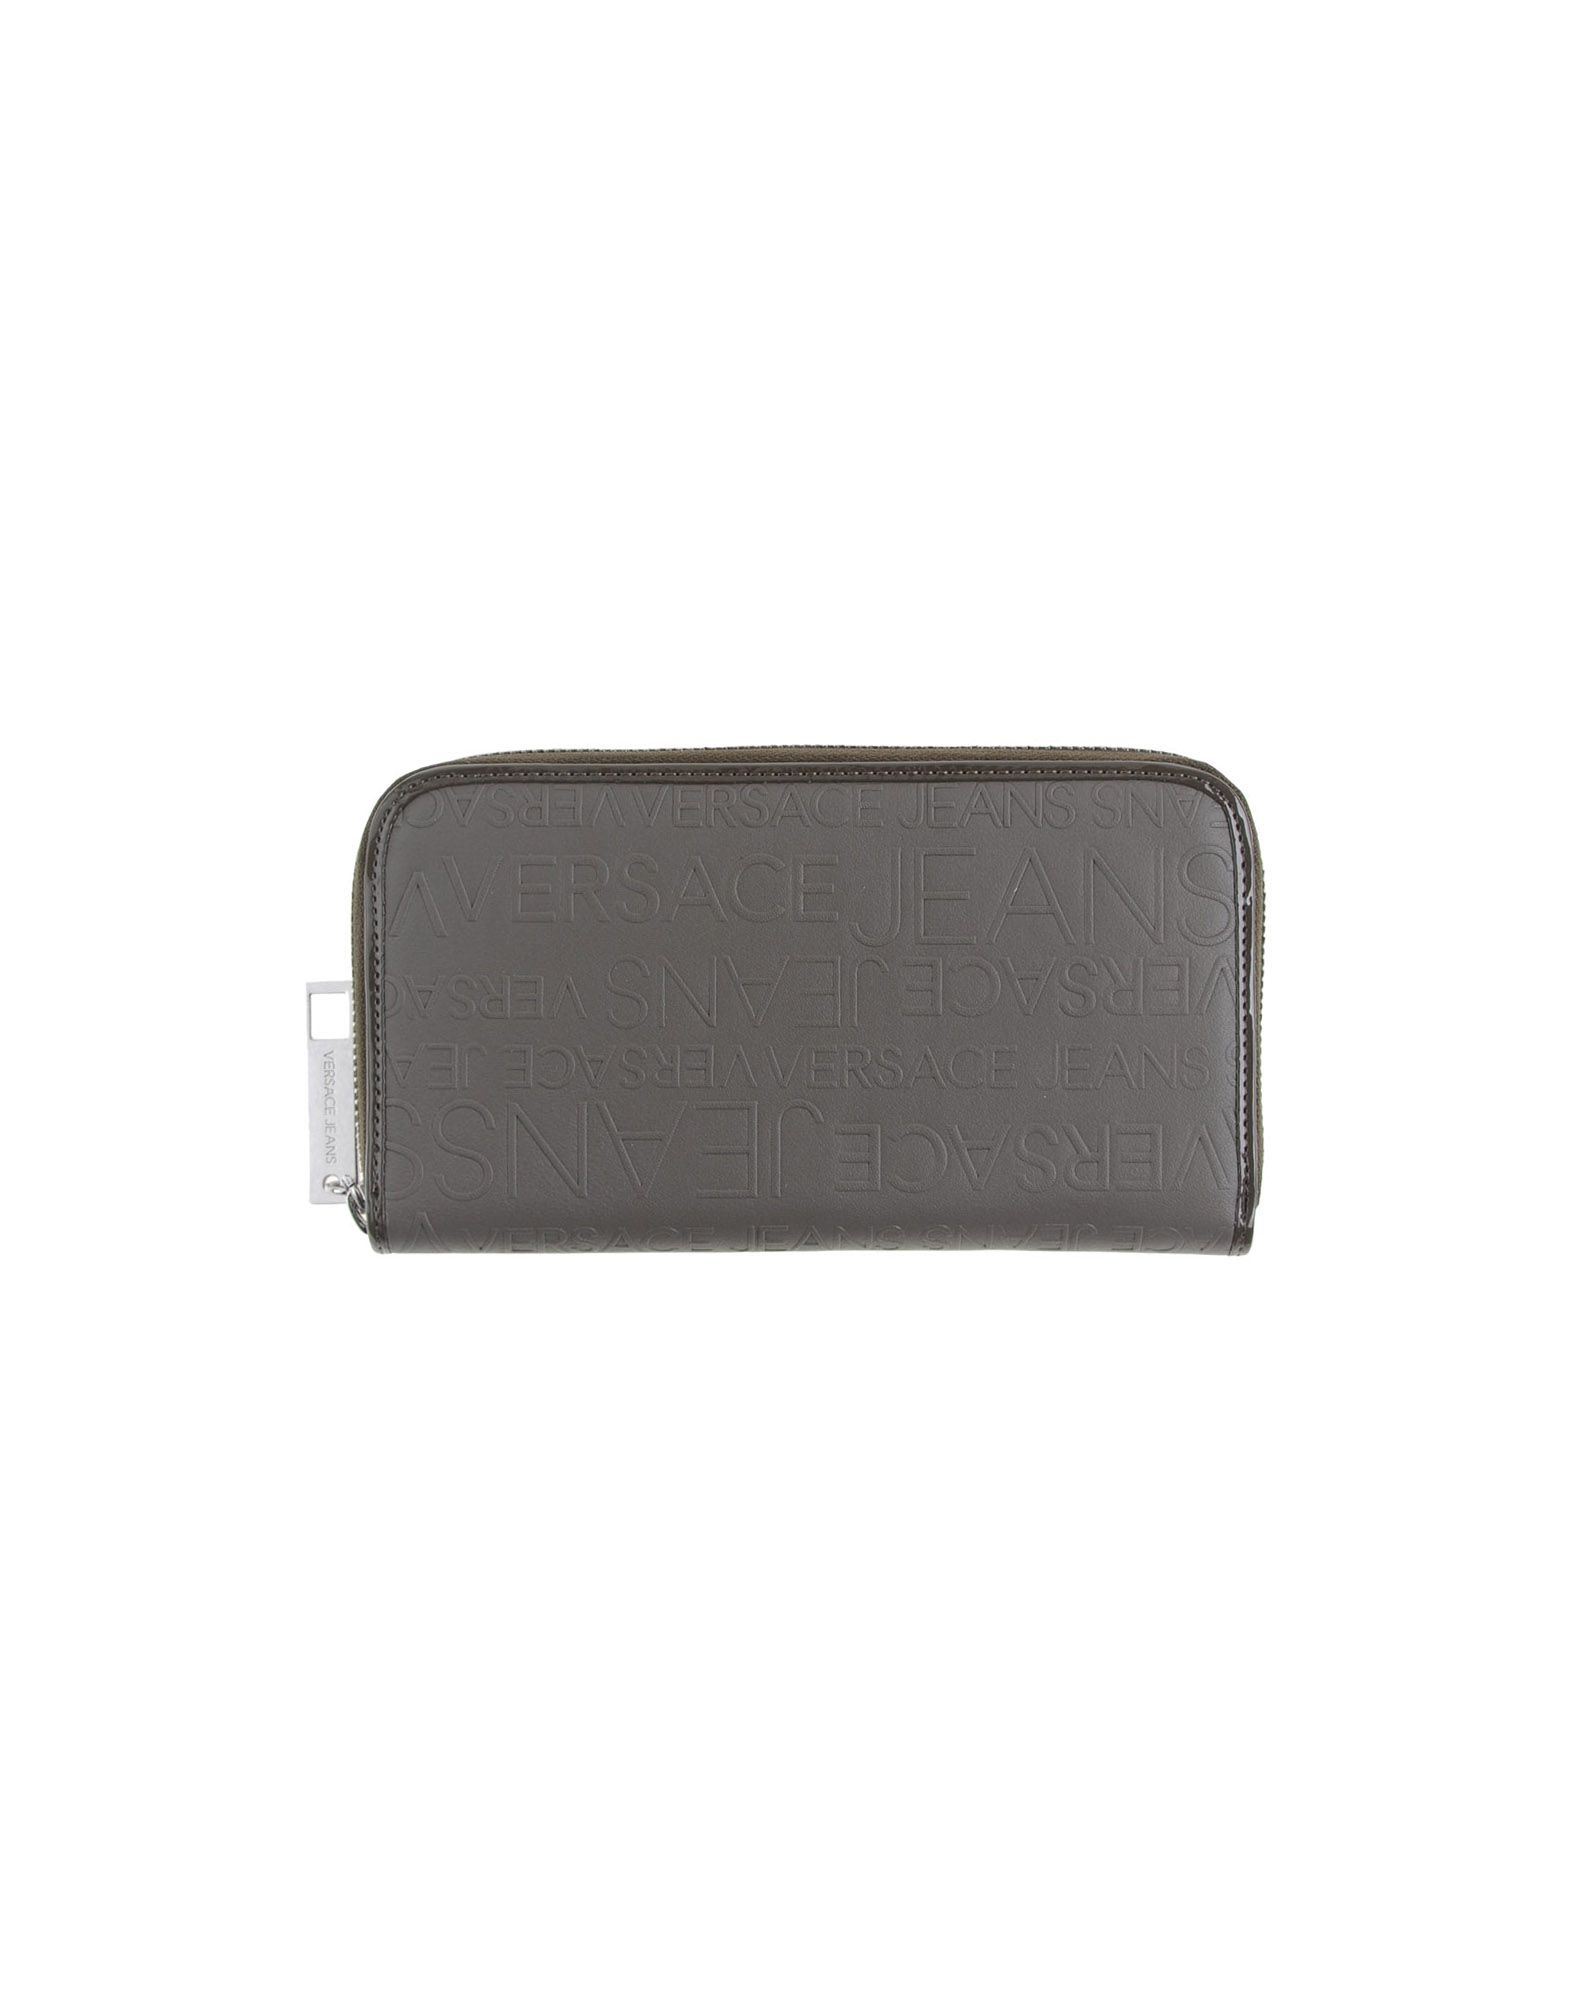 Versace Jeans Wallet In Gray For Men Lyst